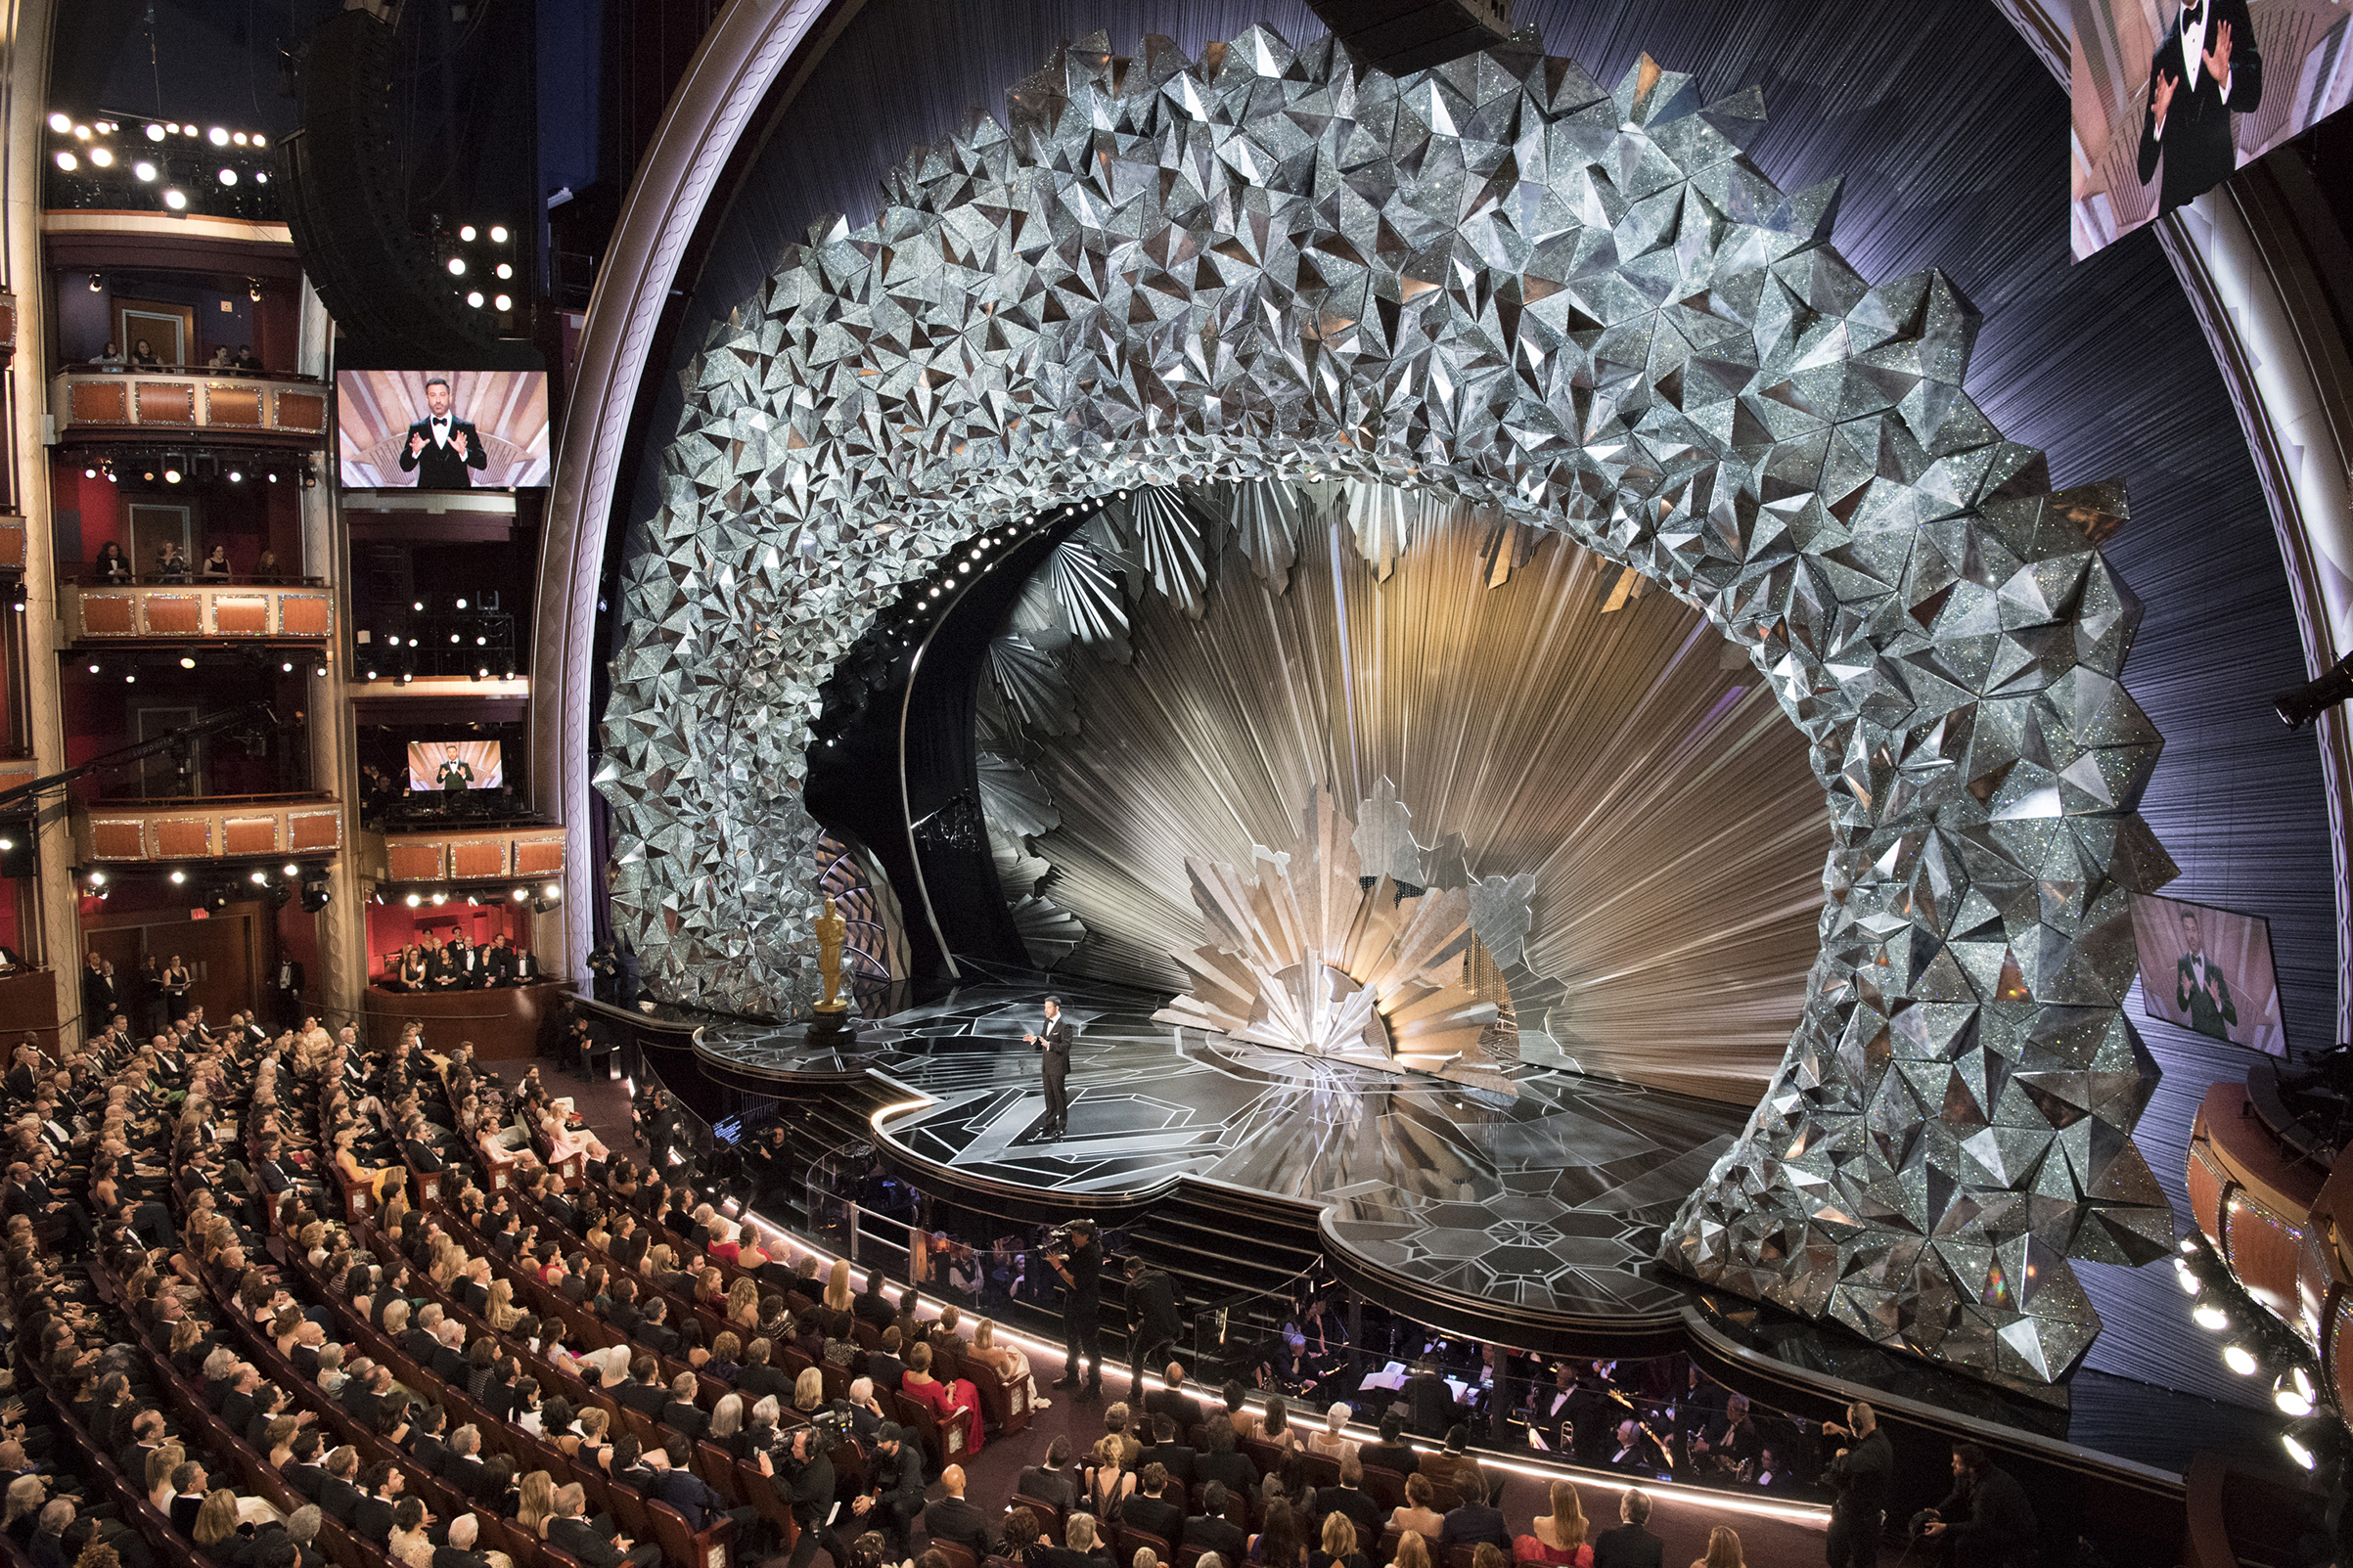 The stunning Dolby Theatre where host Jimmy Kimmel joked that each Swarovski crystal on stage represents the humility of the Hollywood elites in the room.Ed Herrera—ABC/Getty Images